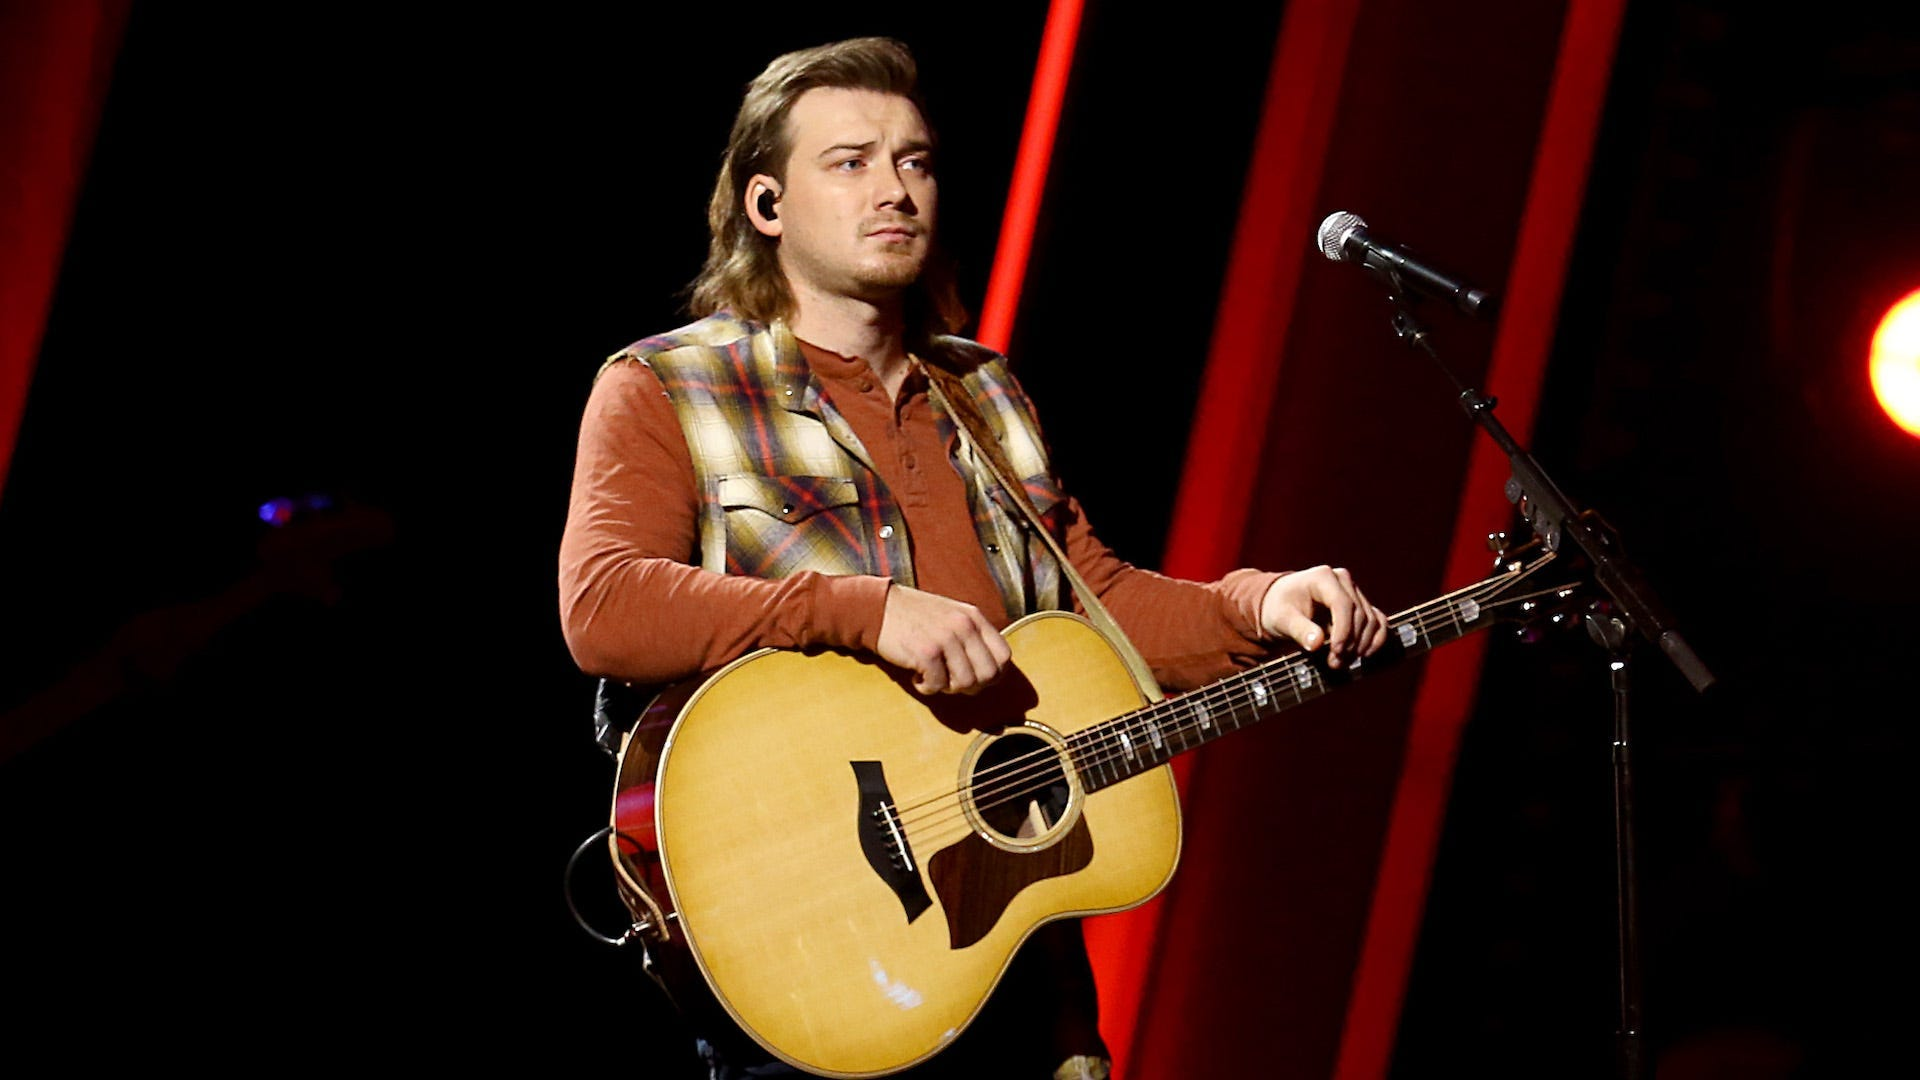 Morgan Wallen has been banned from attending the CMA awards despite a nomination